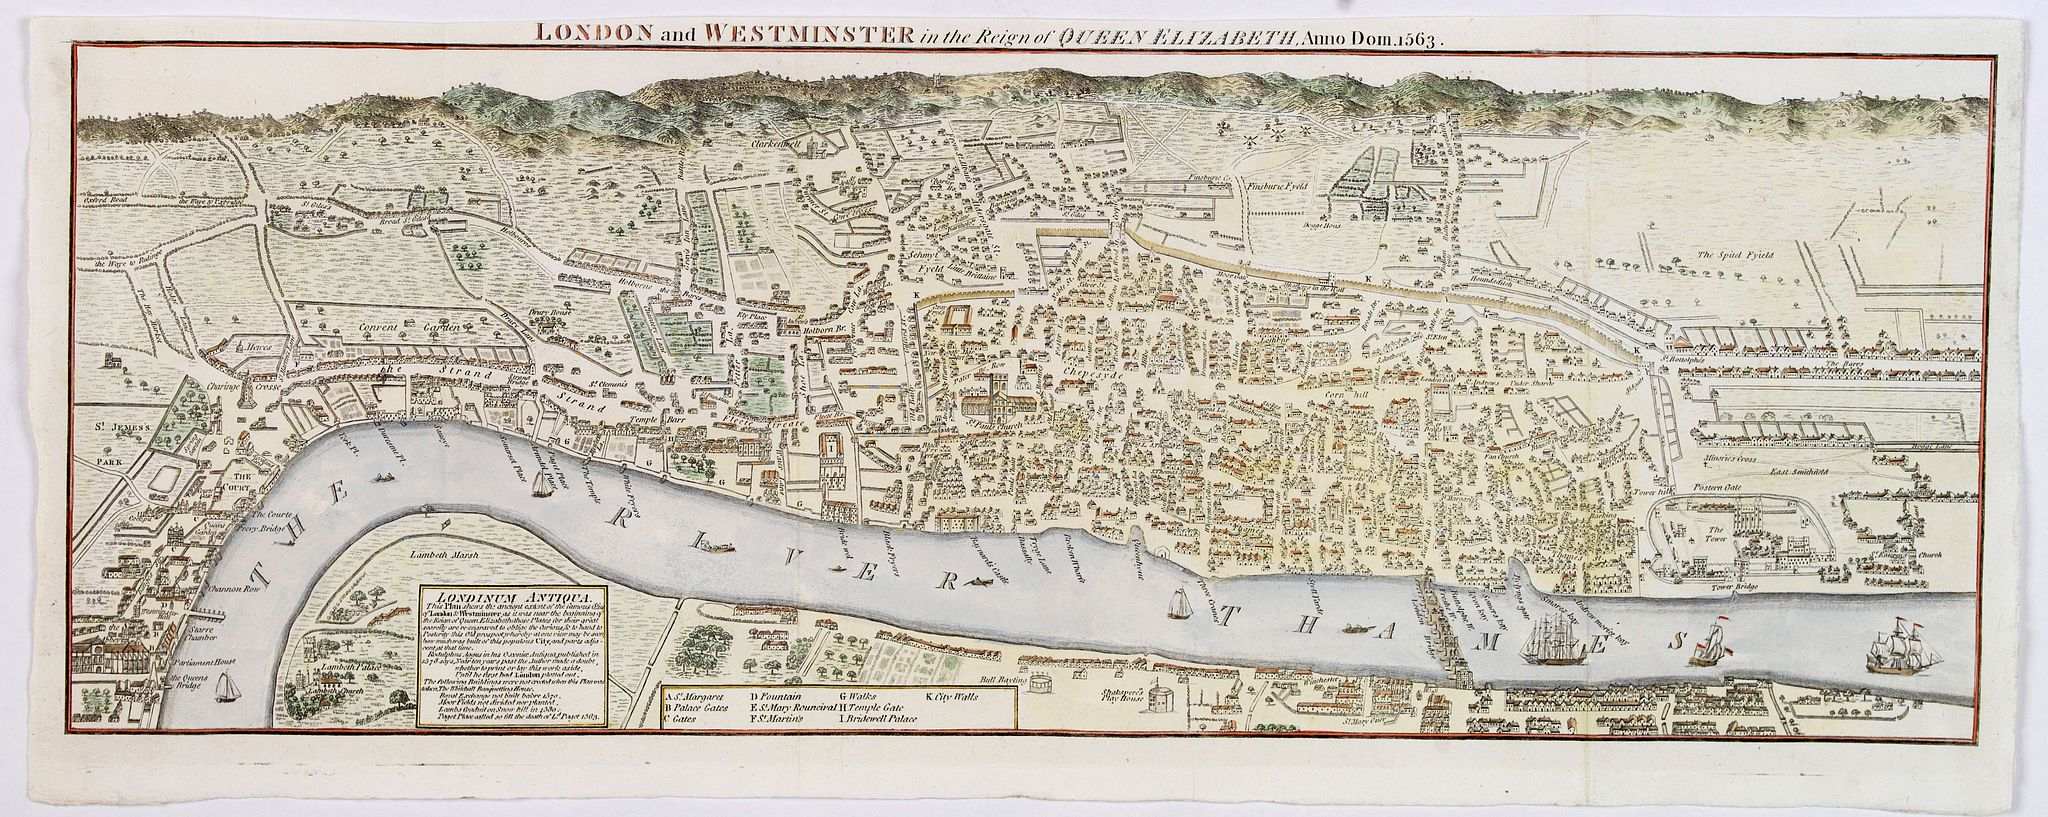 ANONYMOUS -  London and Westminster in the Reign of Queen Elizabeth. Anno Dom. 1563,